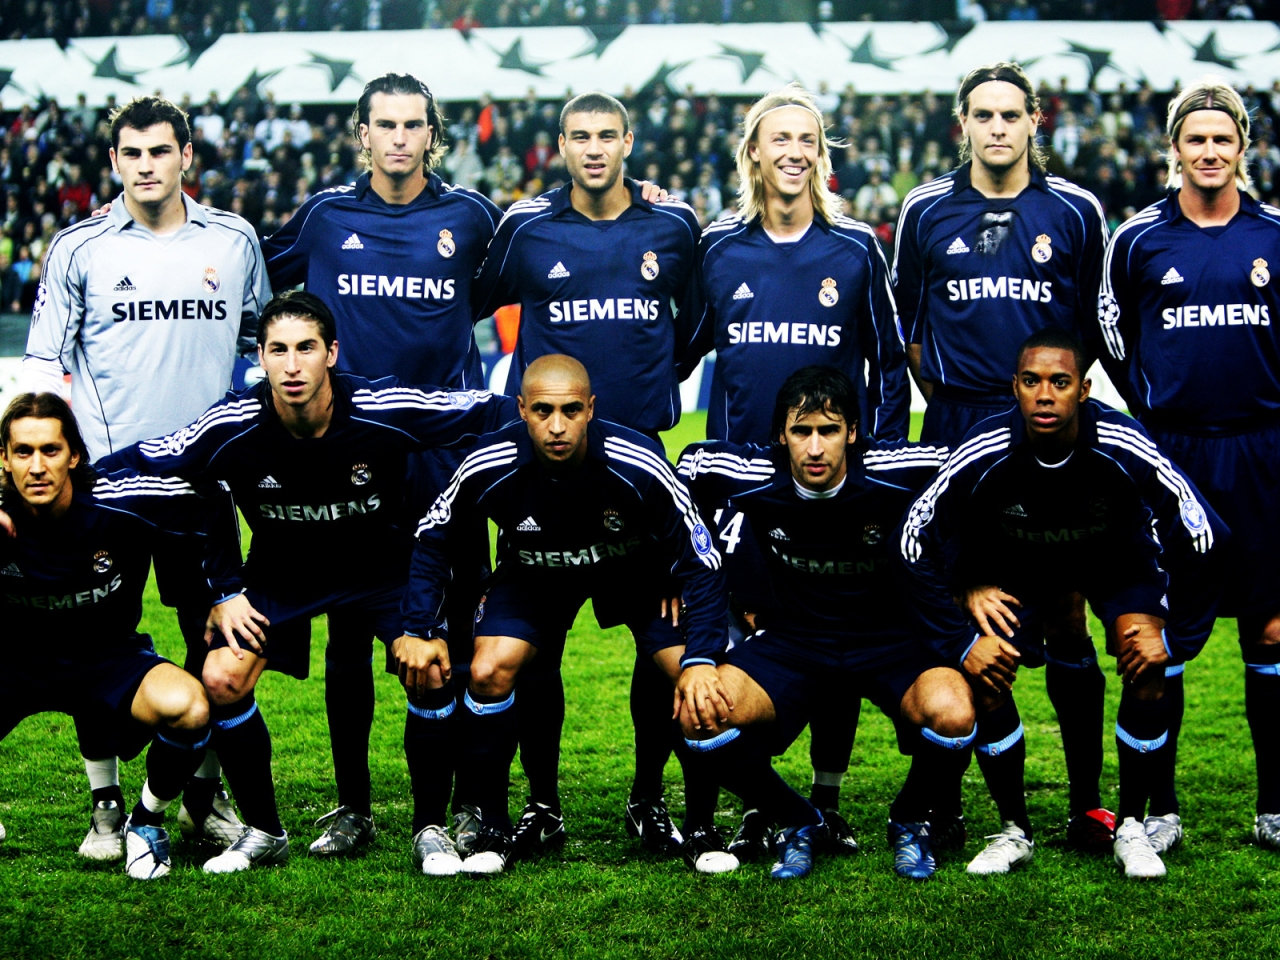 Real Madrid Team for 1280 x 960 resolution